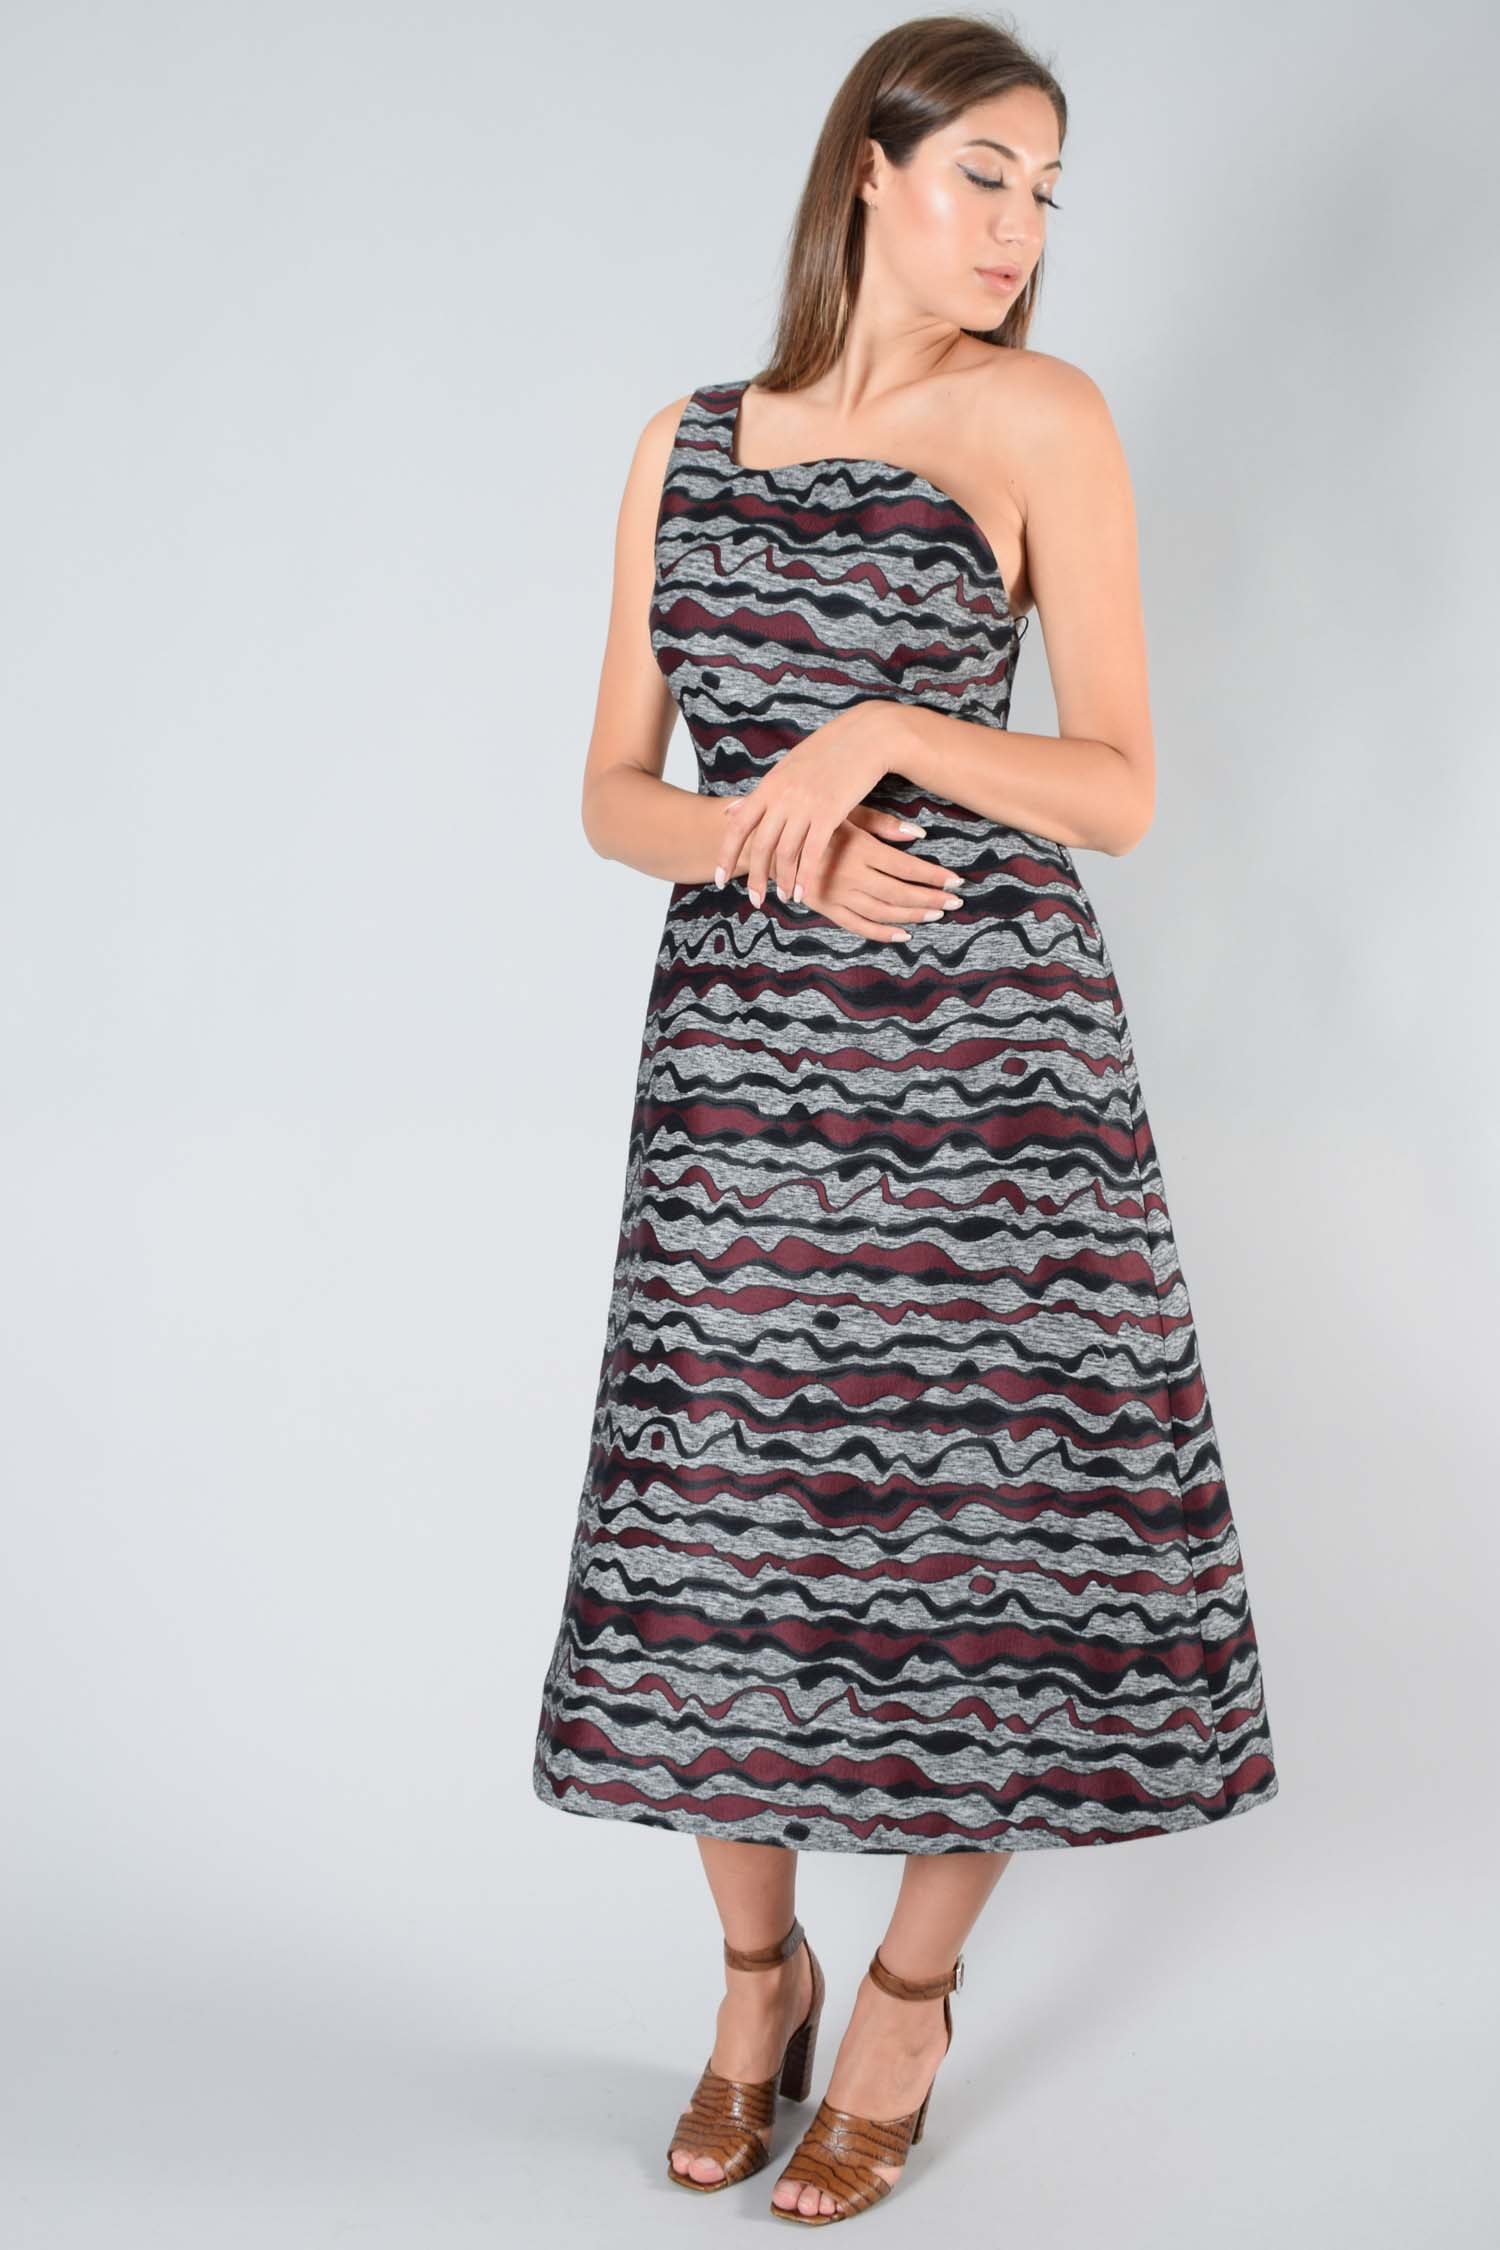 Roksanda Grey Wave Print One Shoulder Dress Size 14